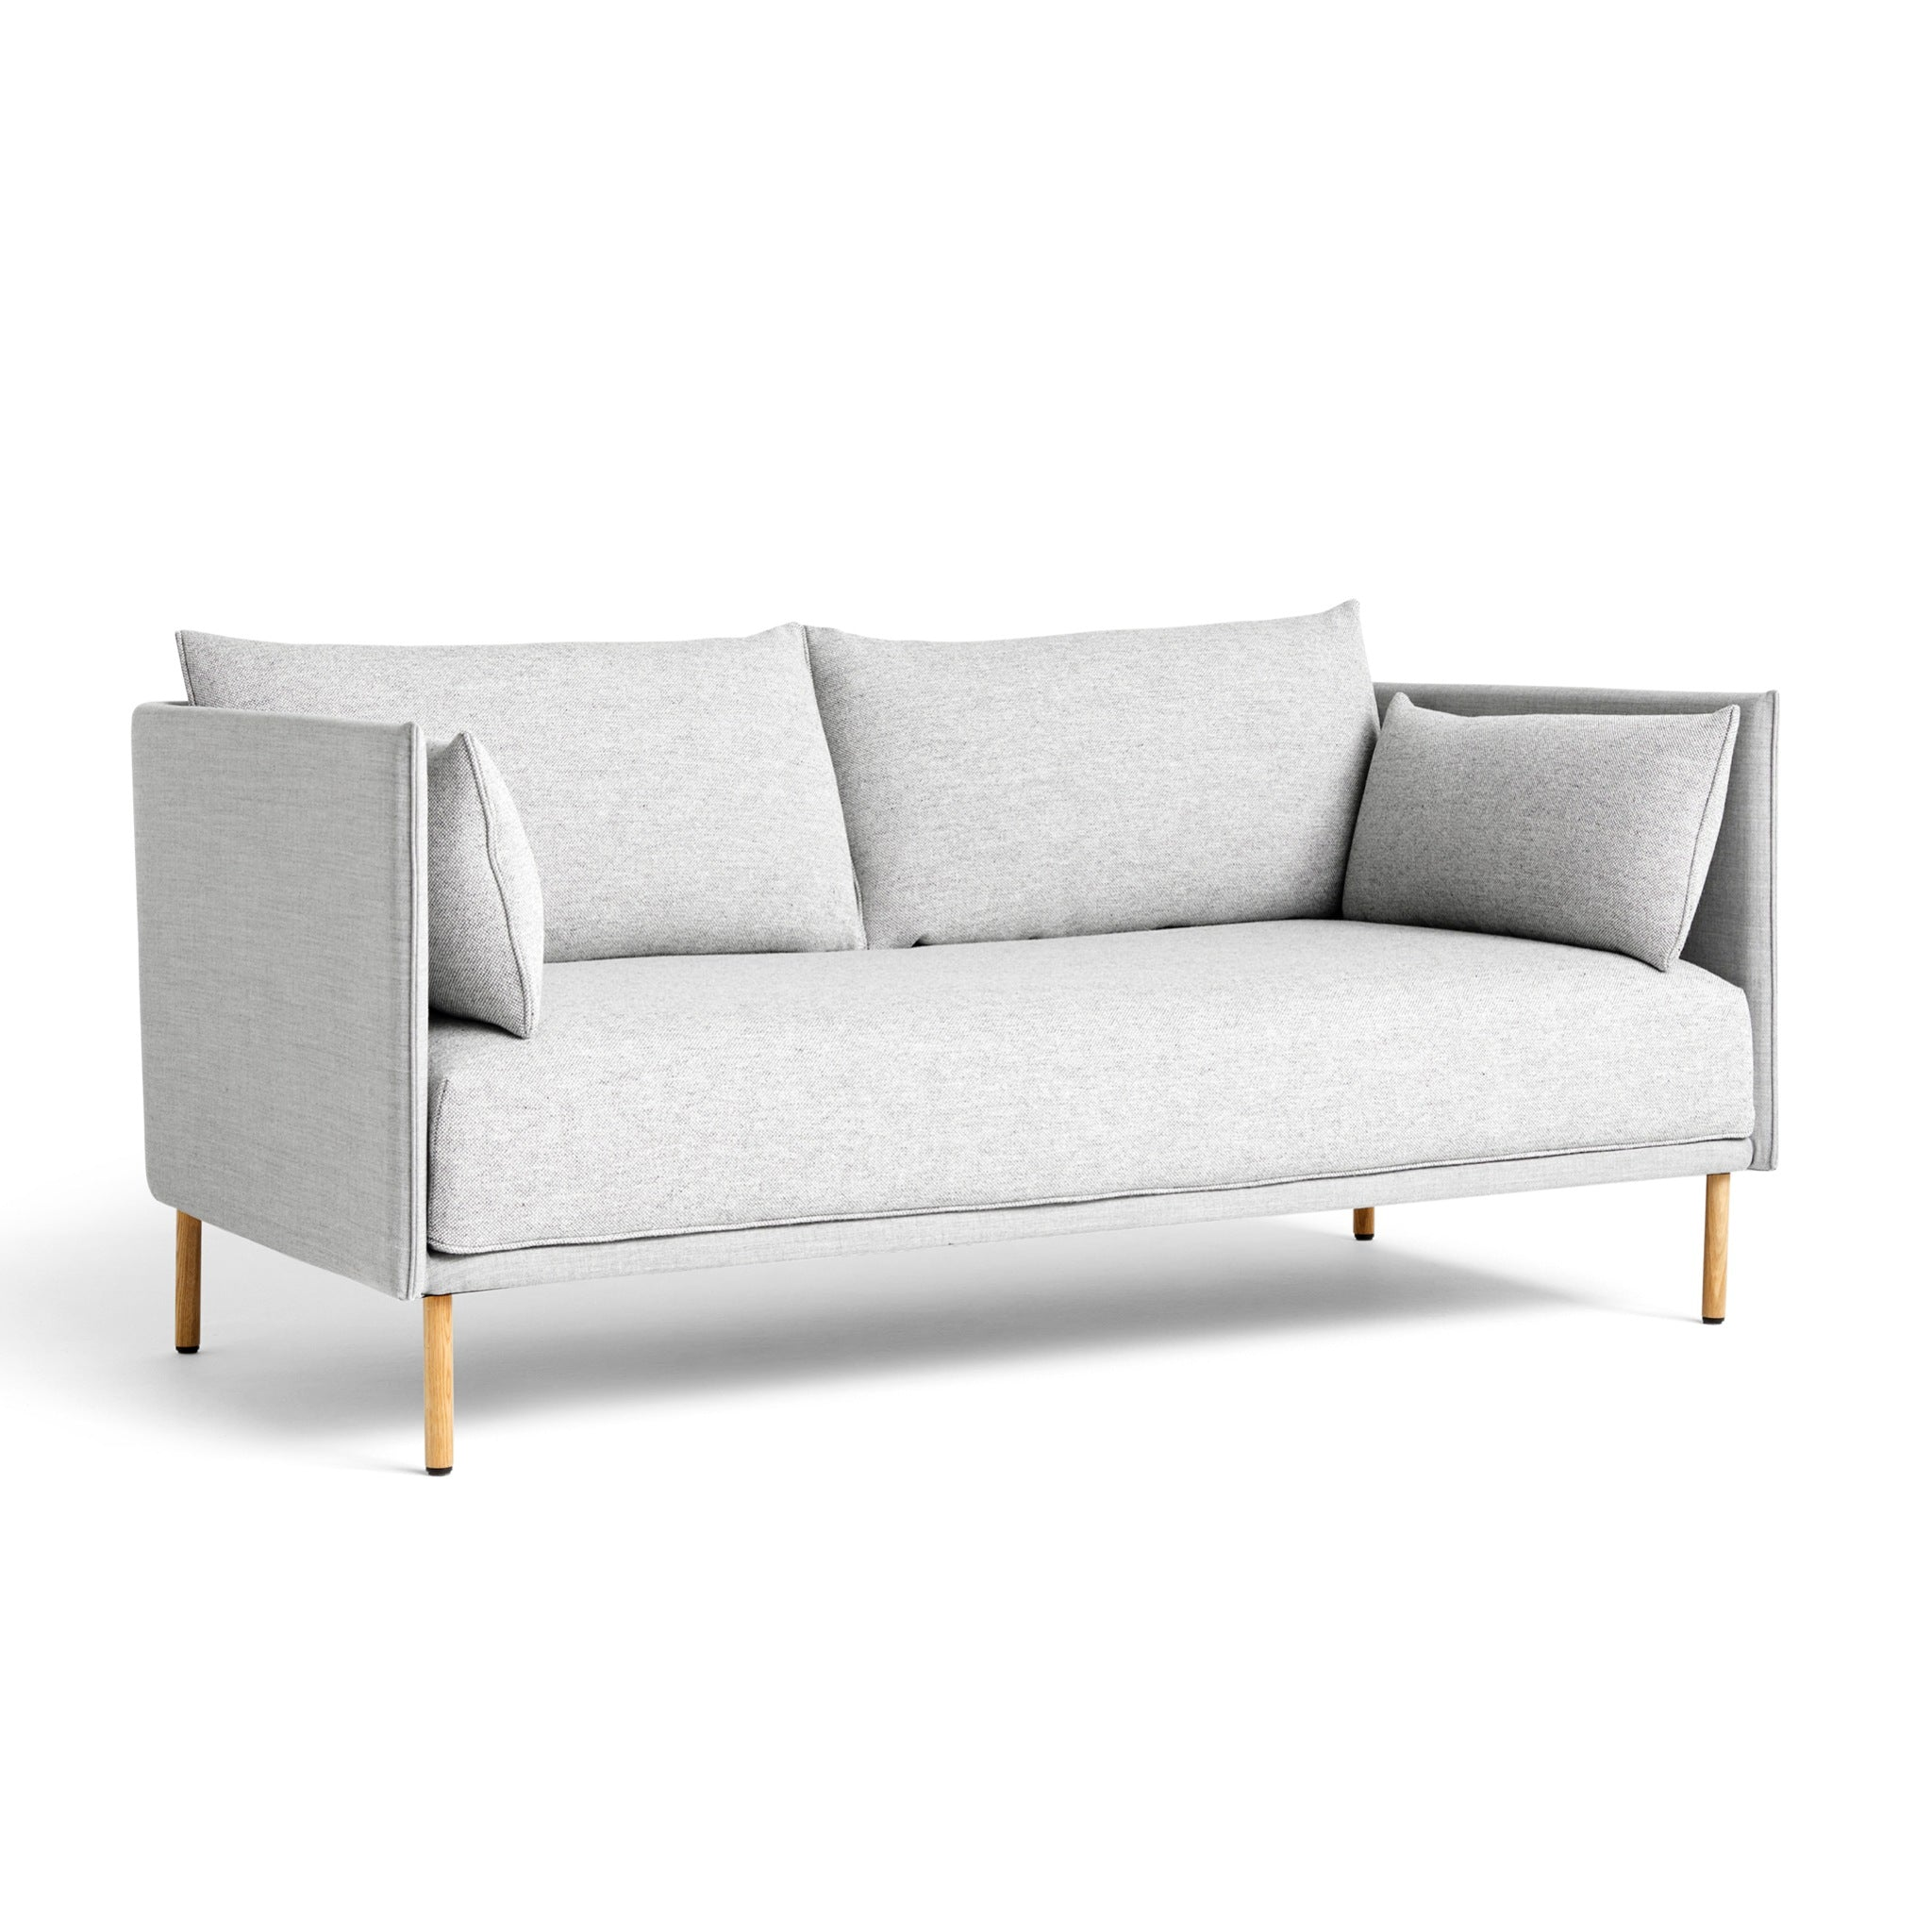 Silhouette Duo Sofa 2 Seater by Hay - haus®